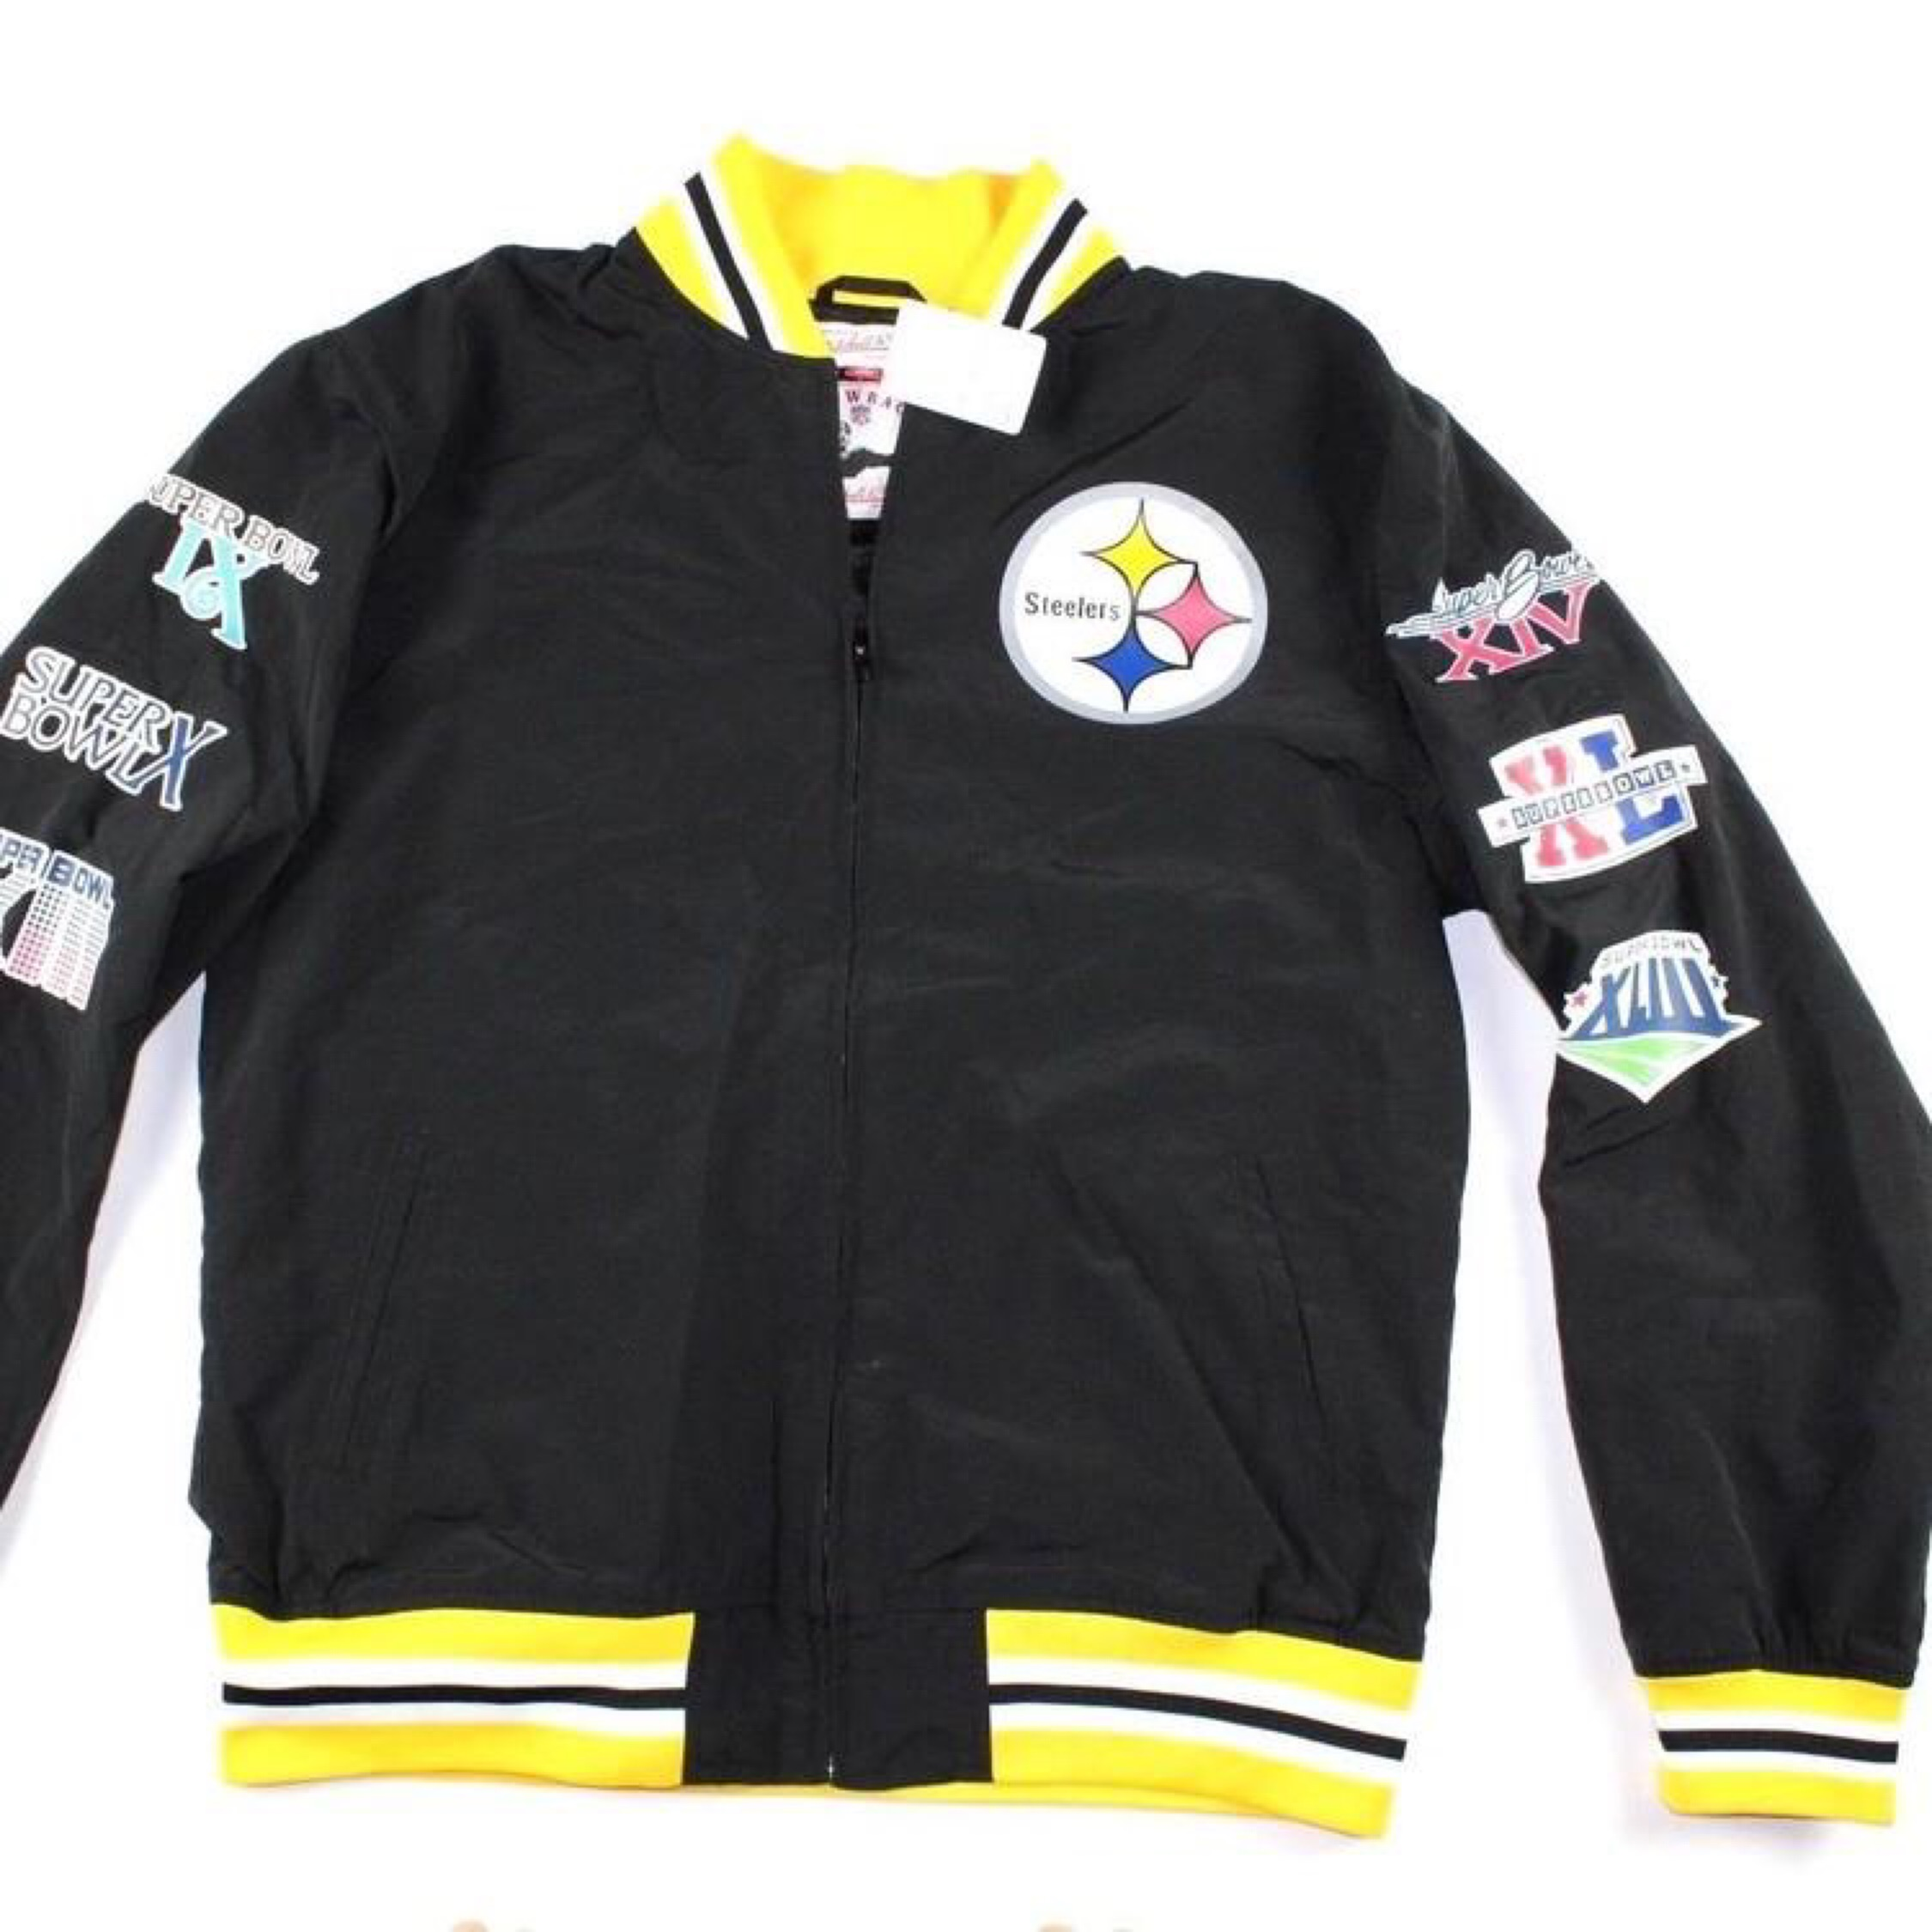 detailed look eca0a 1ca80 Mitchell & Ness Pittsburgh Steelers Jacket